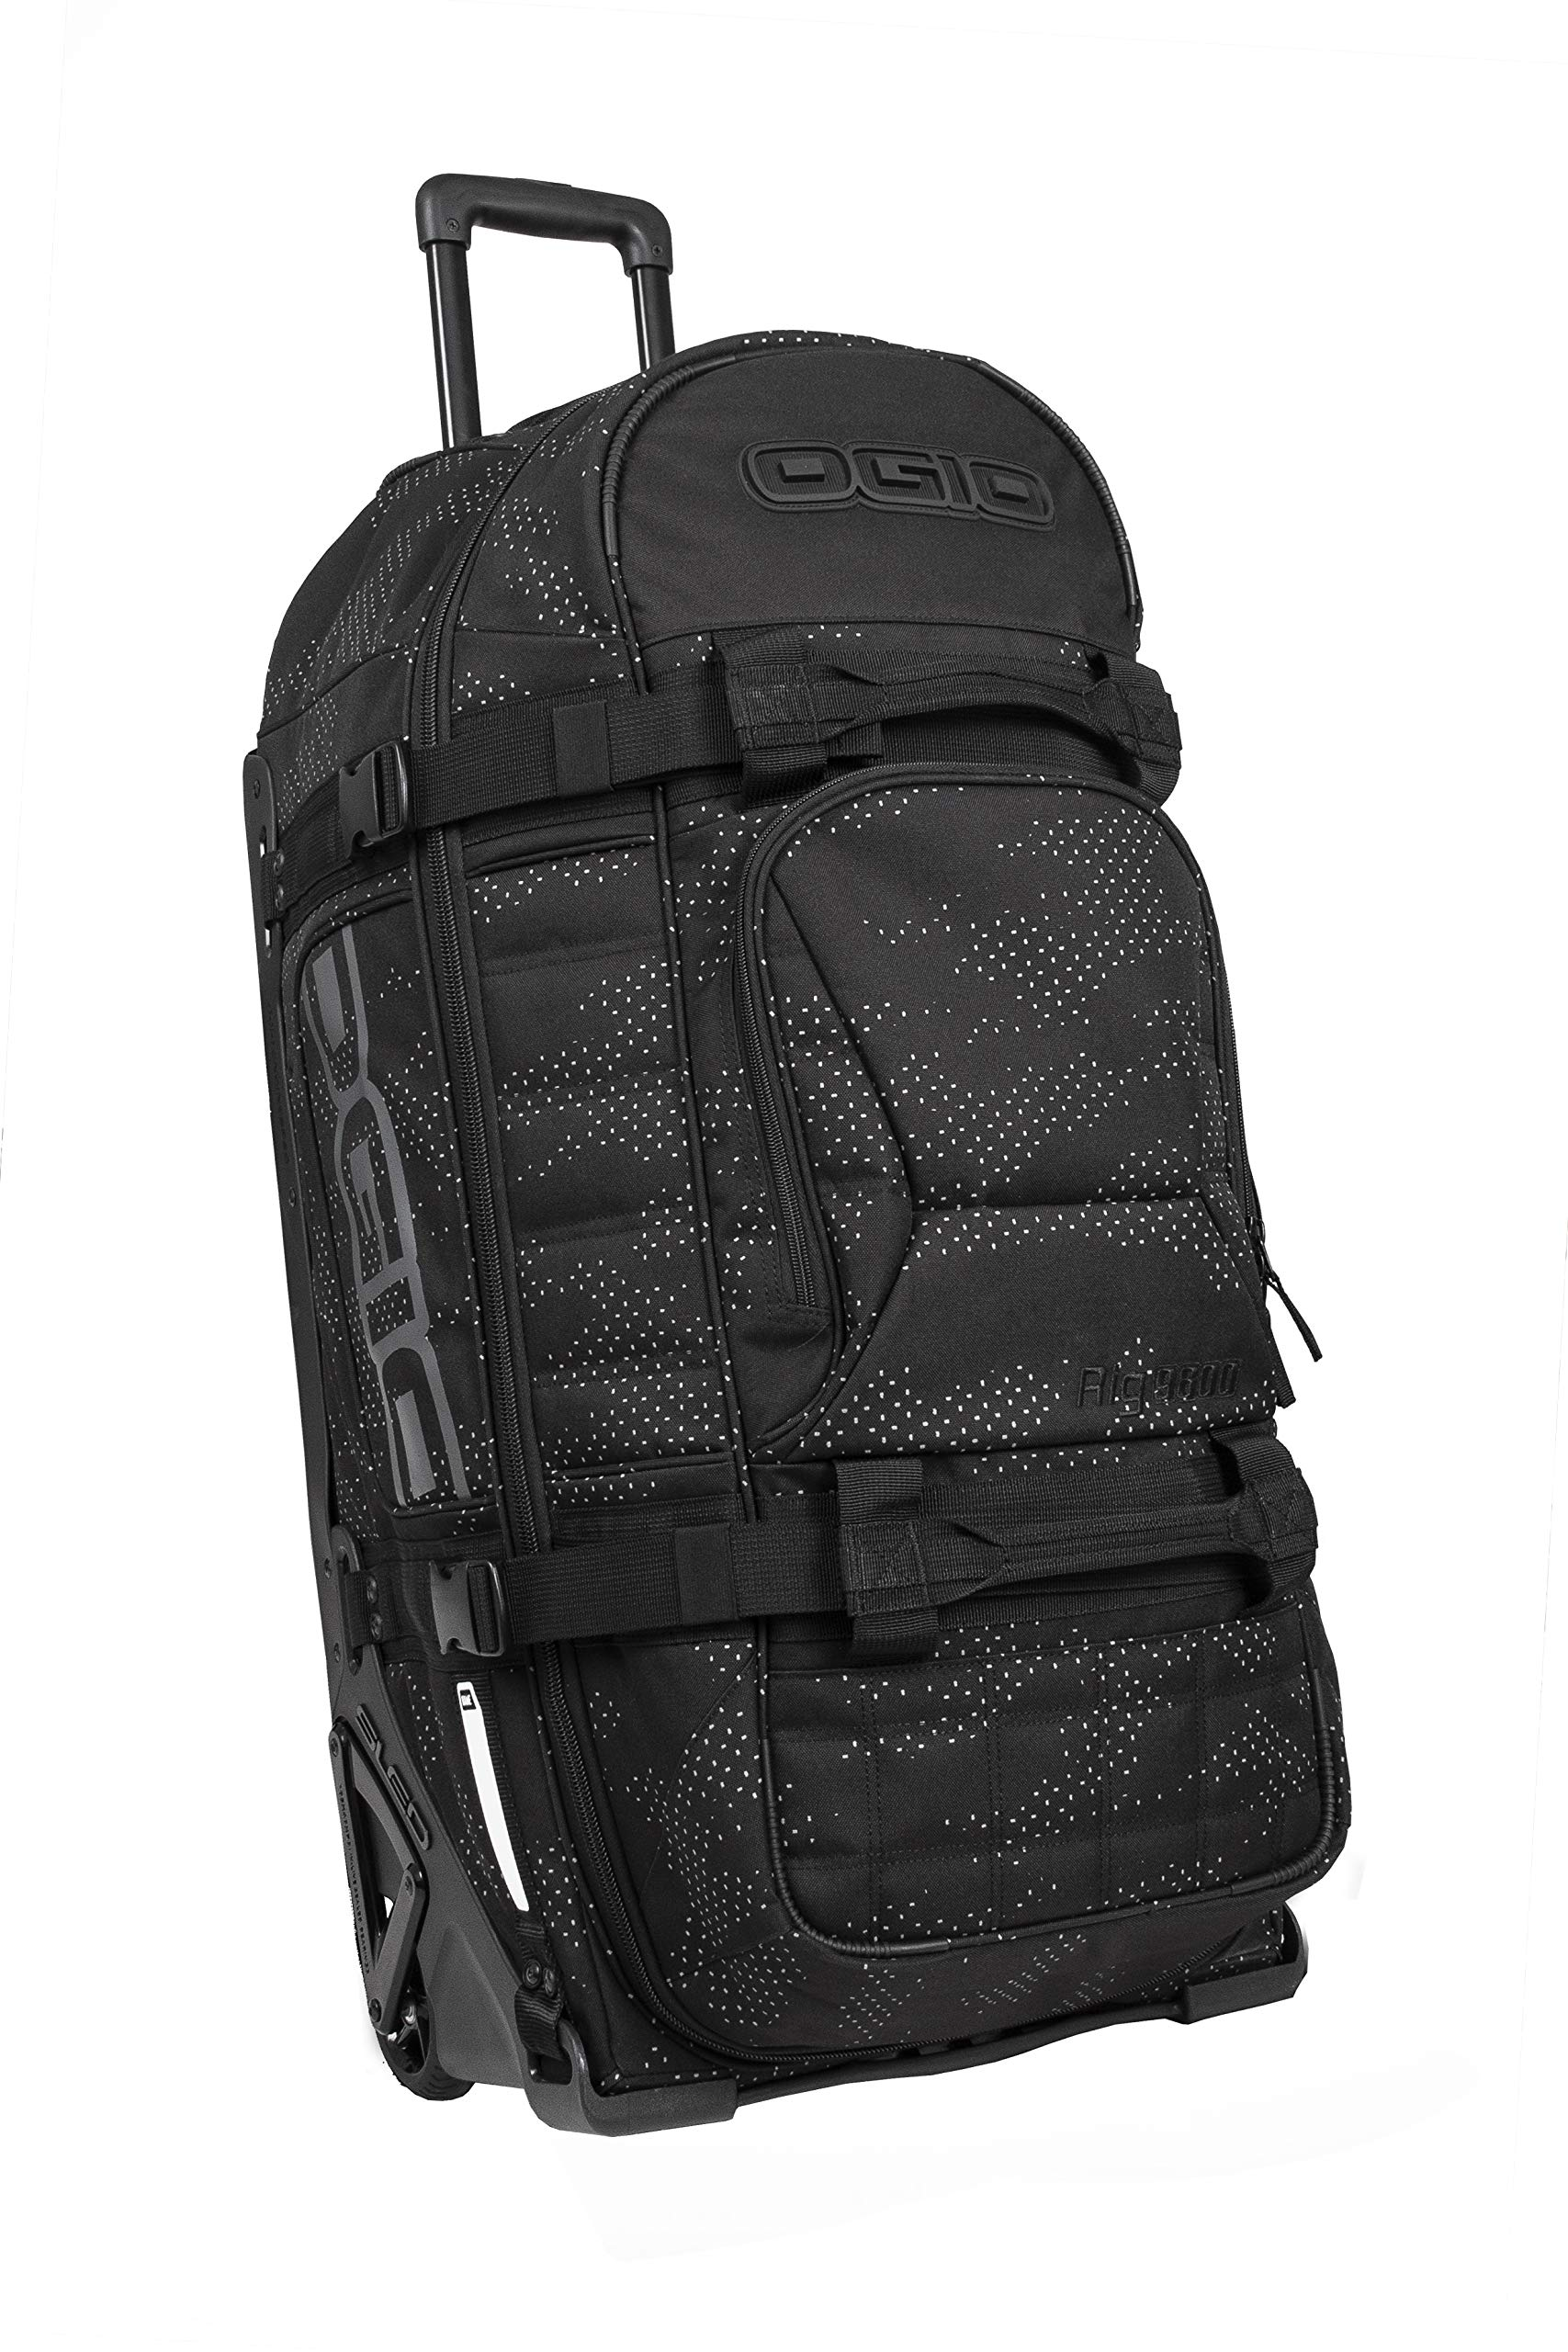 OGIO 5919317OG Night Camo Gear Bag